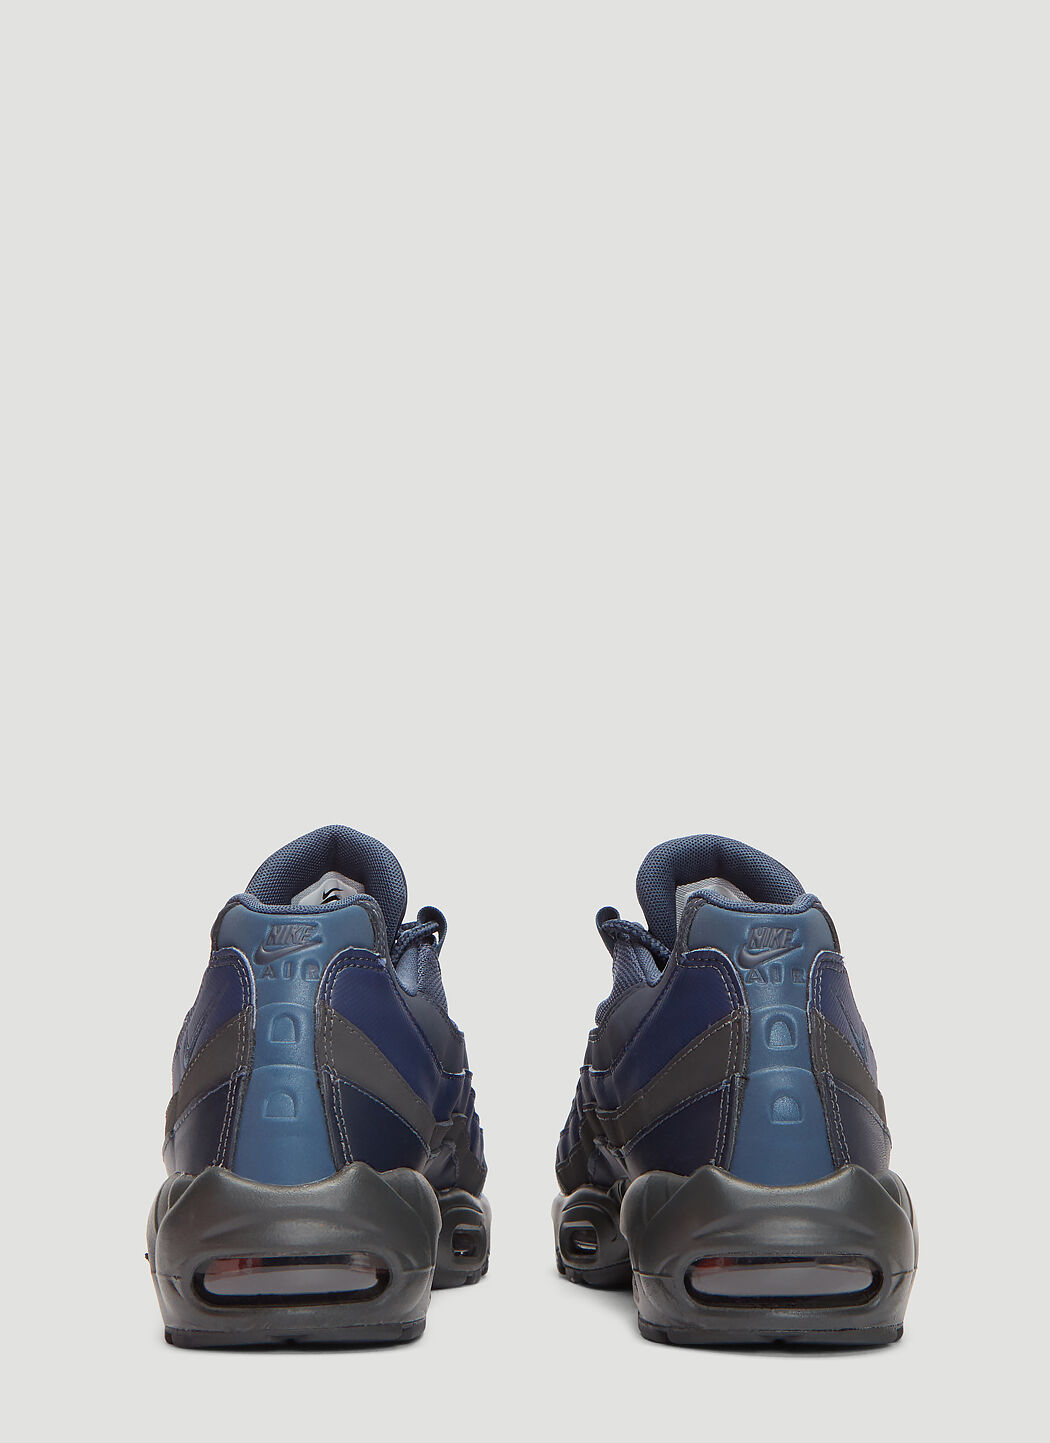 NIKE AIR MAX 95 ESSENTIAL Kie Ney AMAX 95 essential sneakers 749,766 407 men's shoes navy [load planned Shinnyu load in reservation product 1013